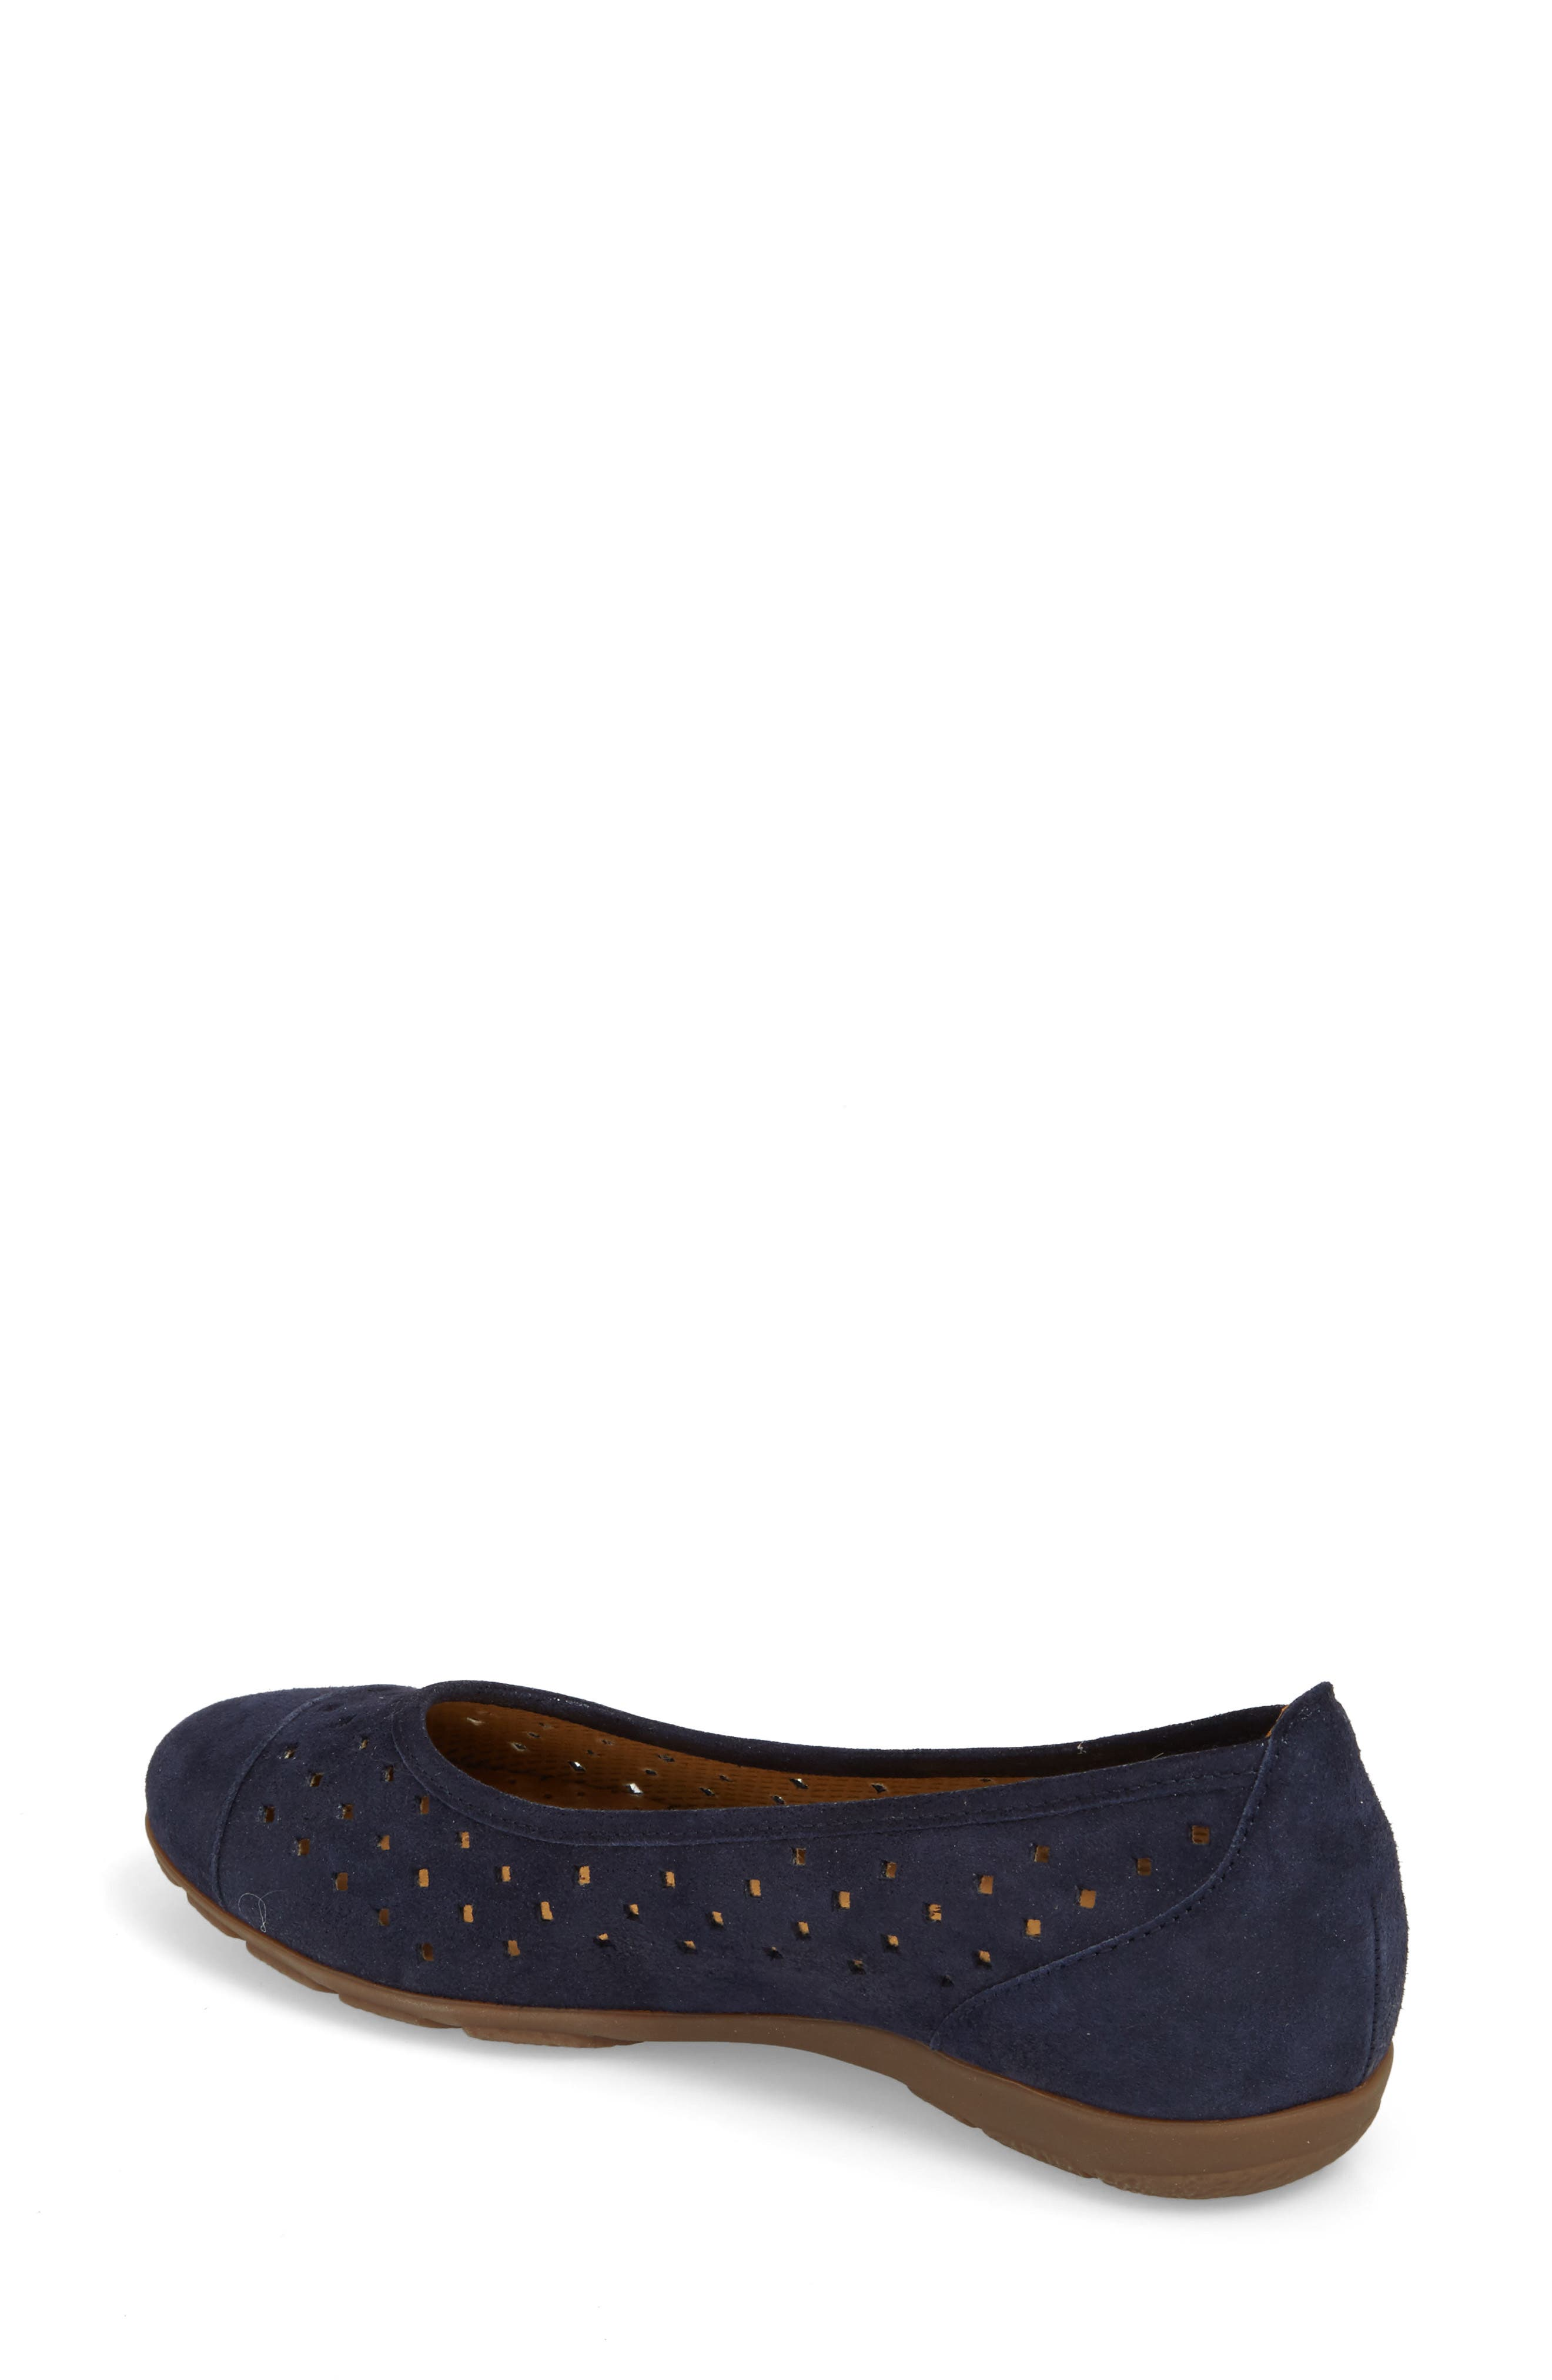 Perforated Ballet Flat,                             Alternate thumbnail 2, color,                             Blue Metallic Leather